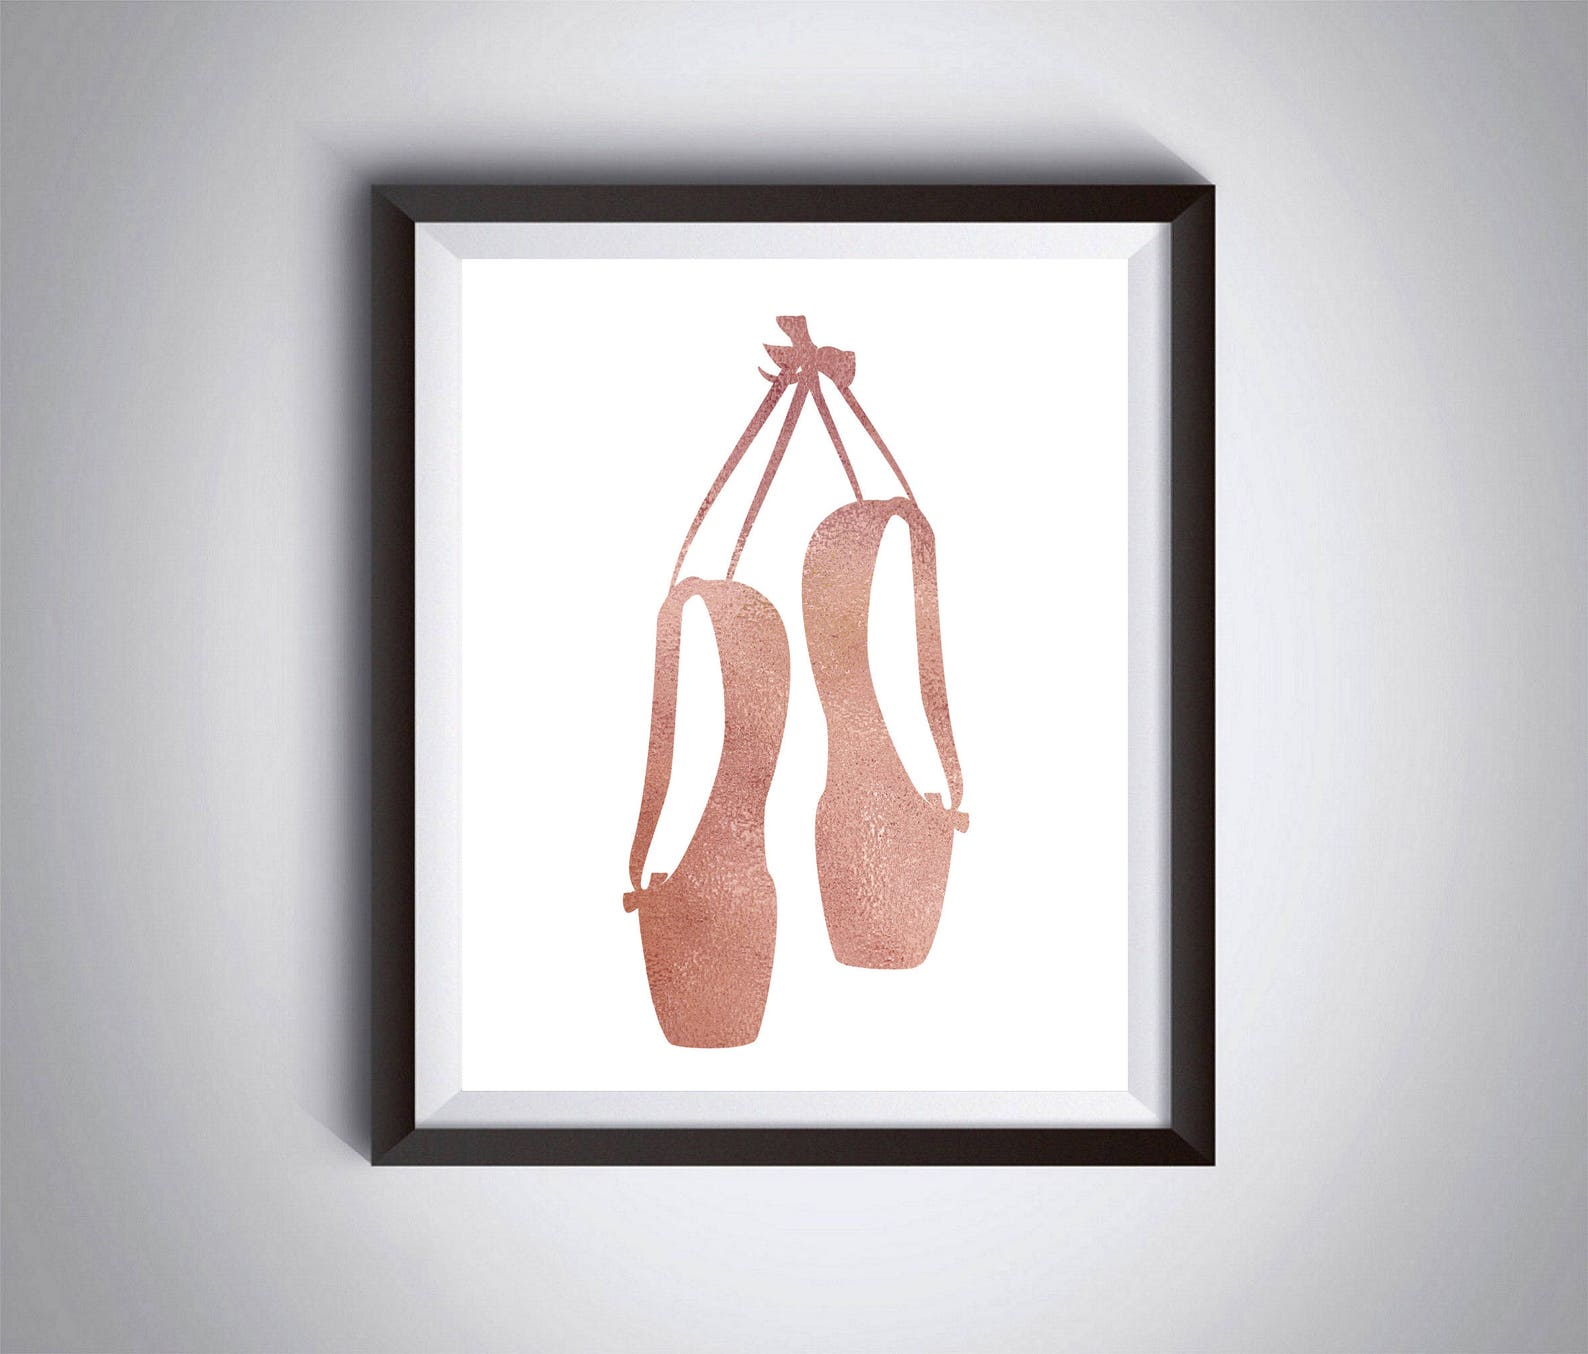 ballet slippers, ballet shoes, rose gold watercolor, girls room decor, ballerina gift, digital poster print, dancer wall art